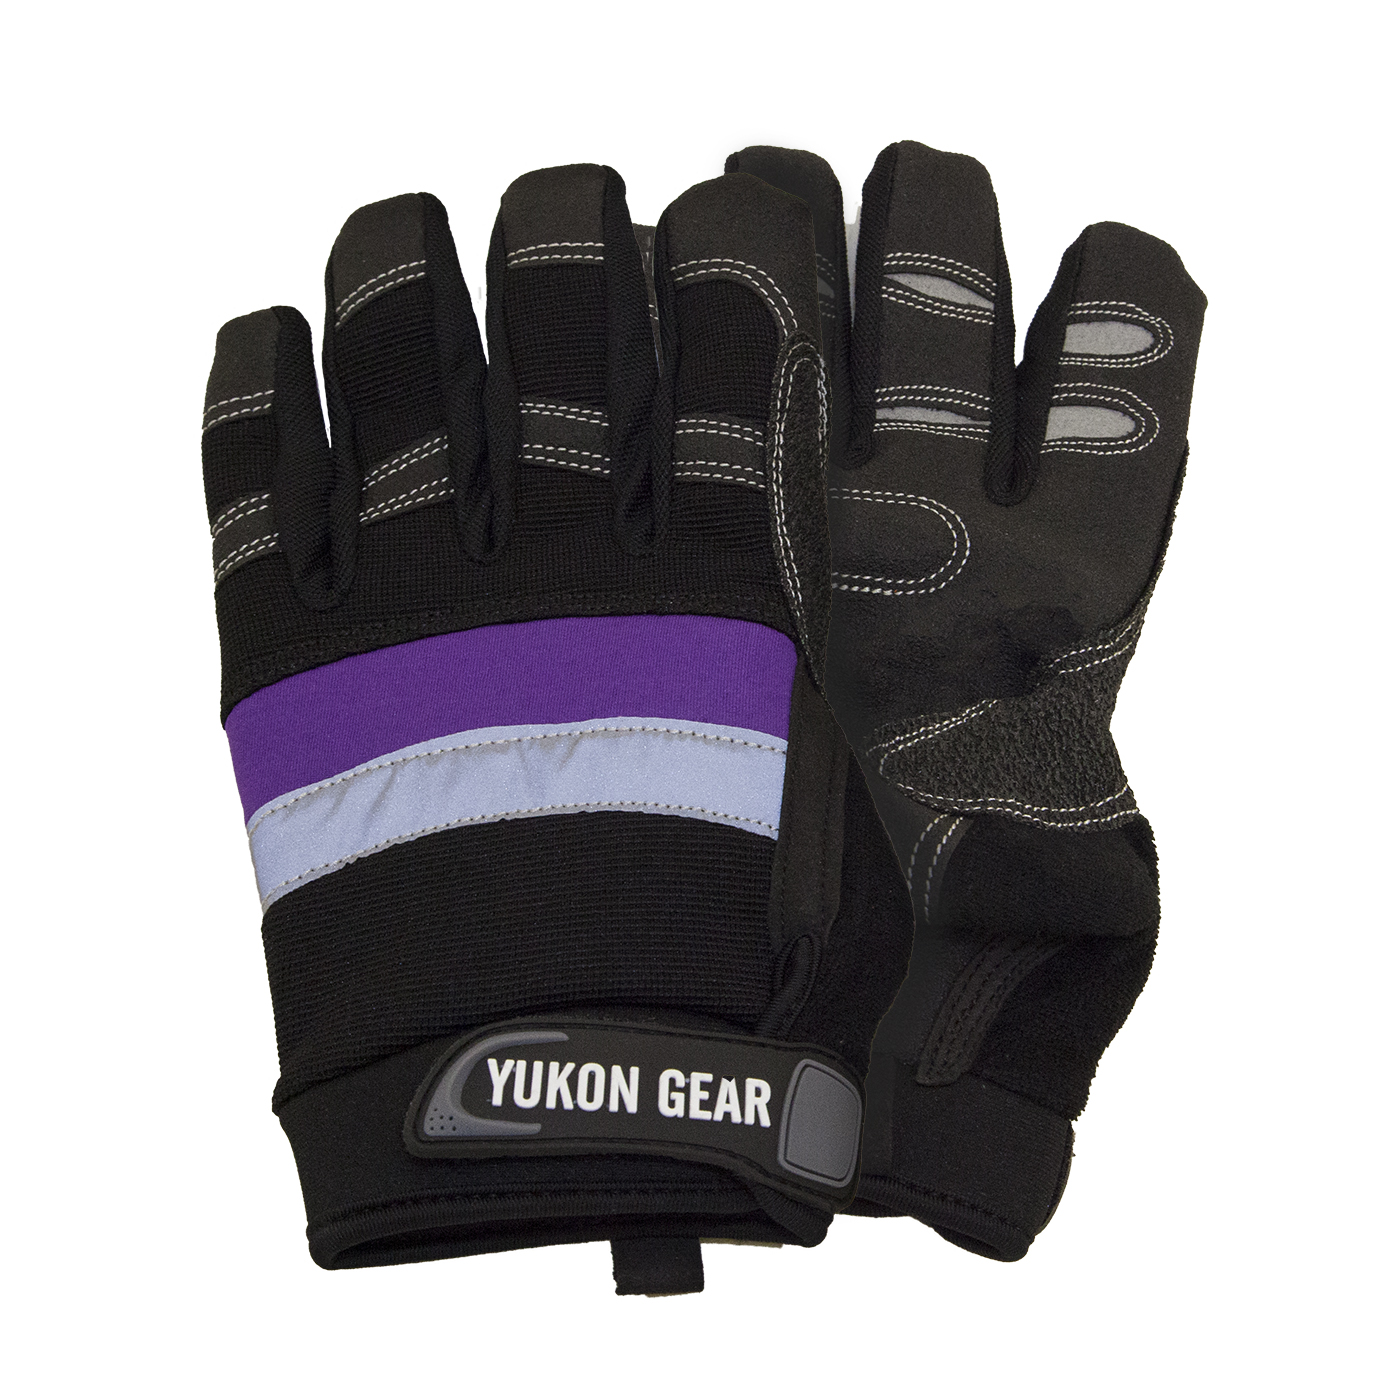 YRGGLOVES-1 - Yukon Recovery Gloves - Premium Cowhide Leather